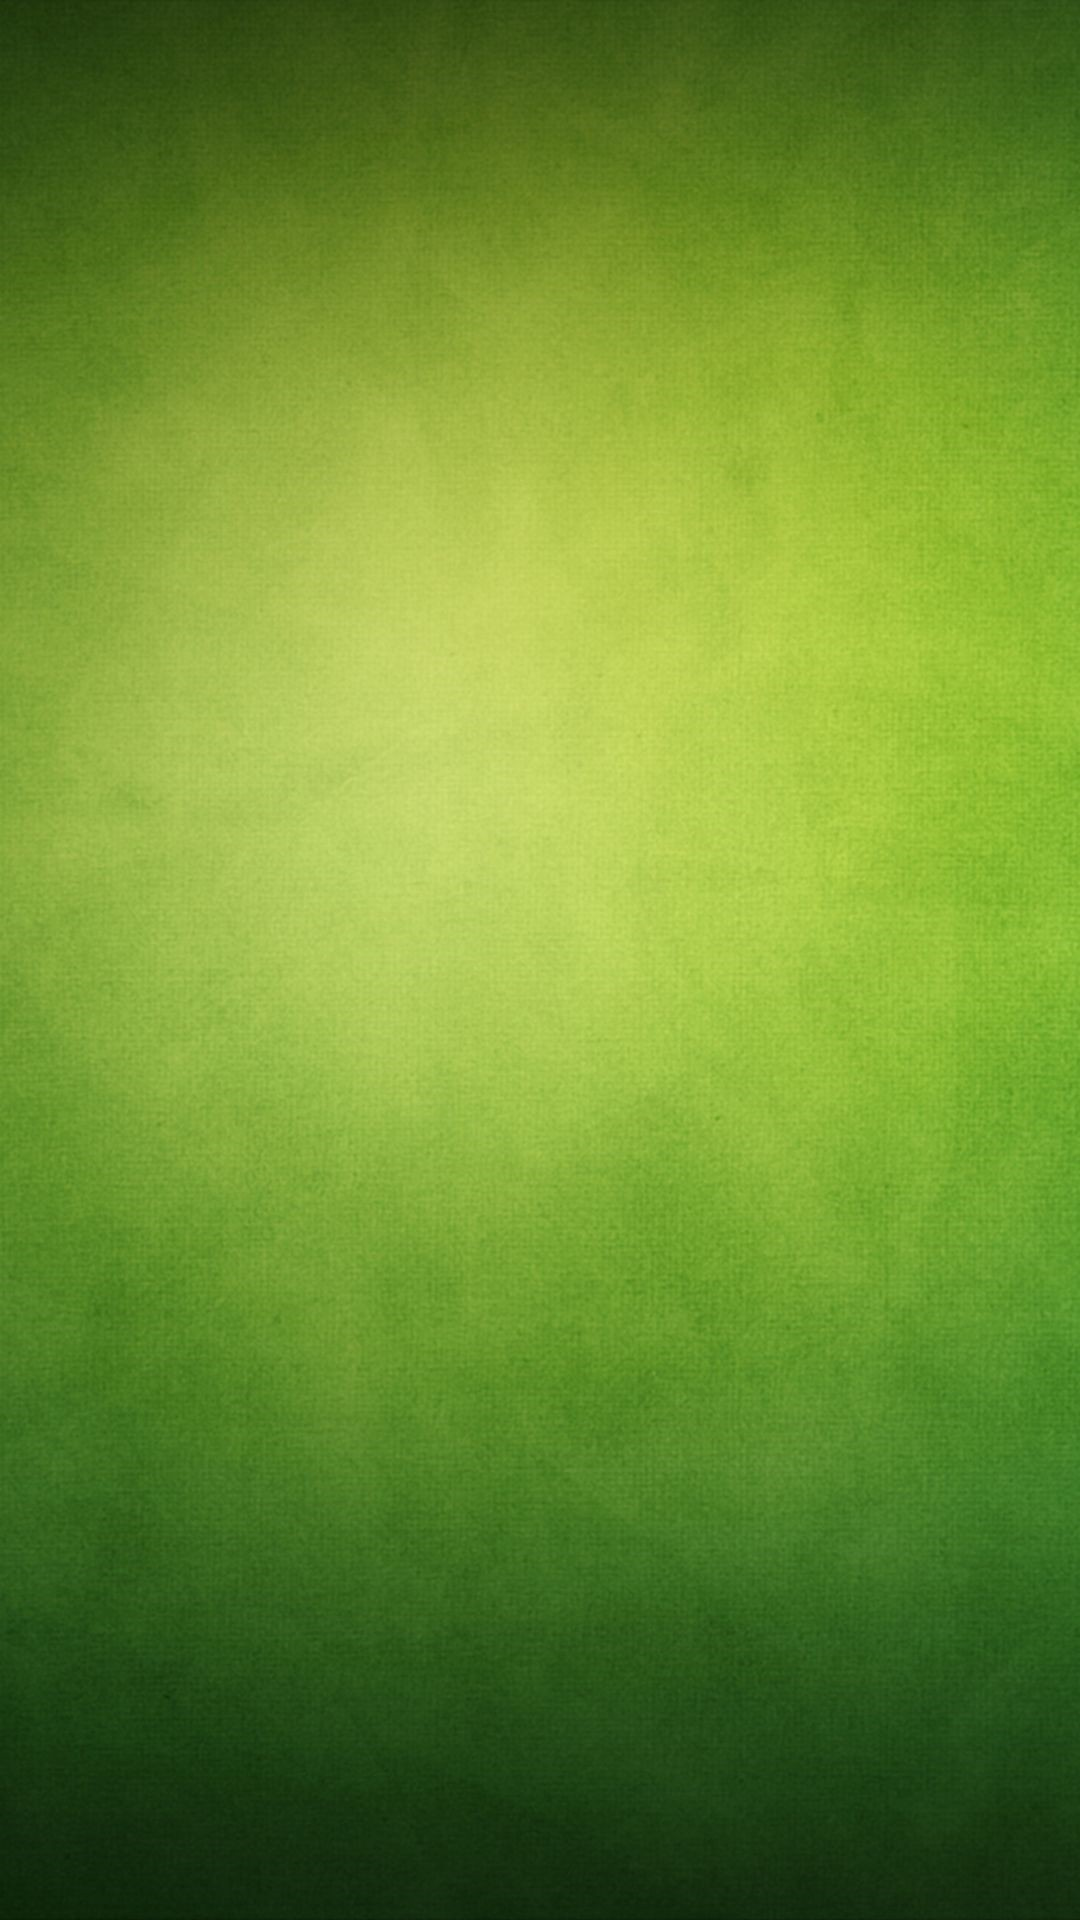 Green iPhone 5 wallpaper